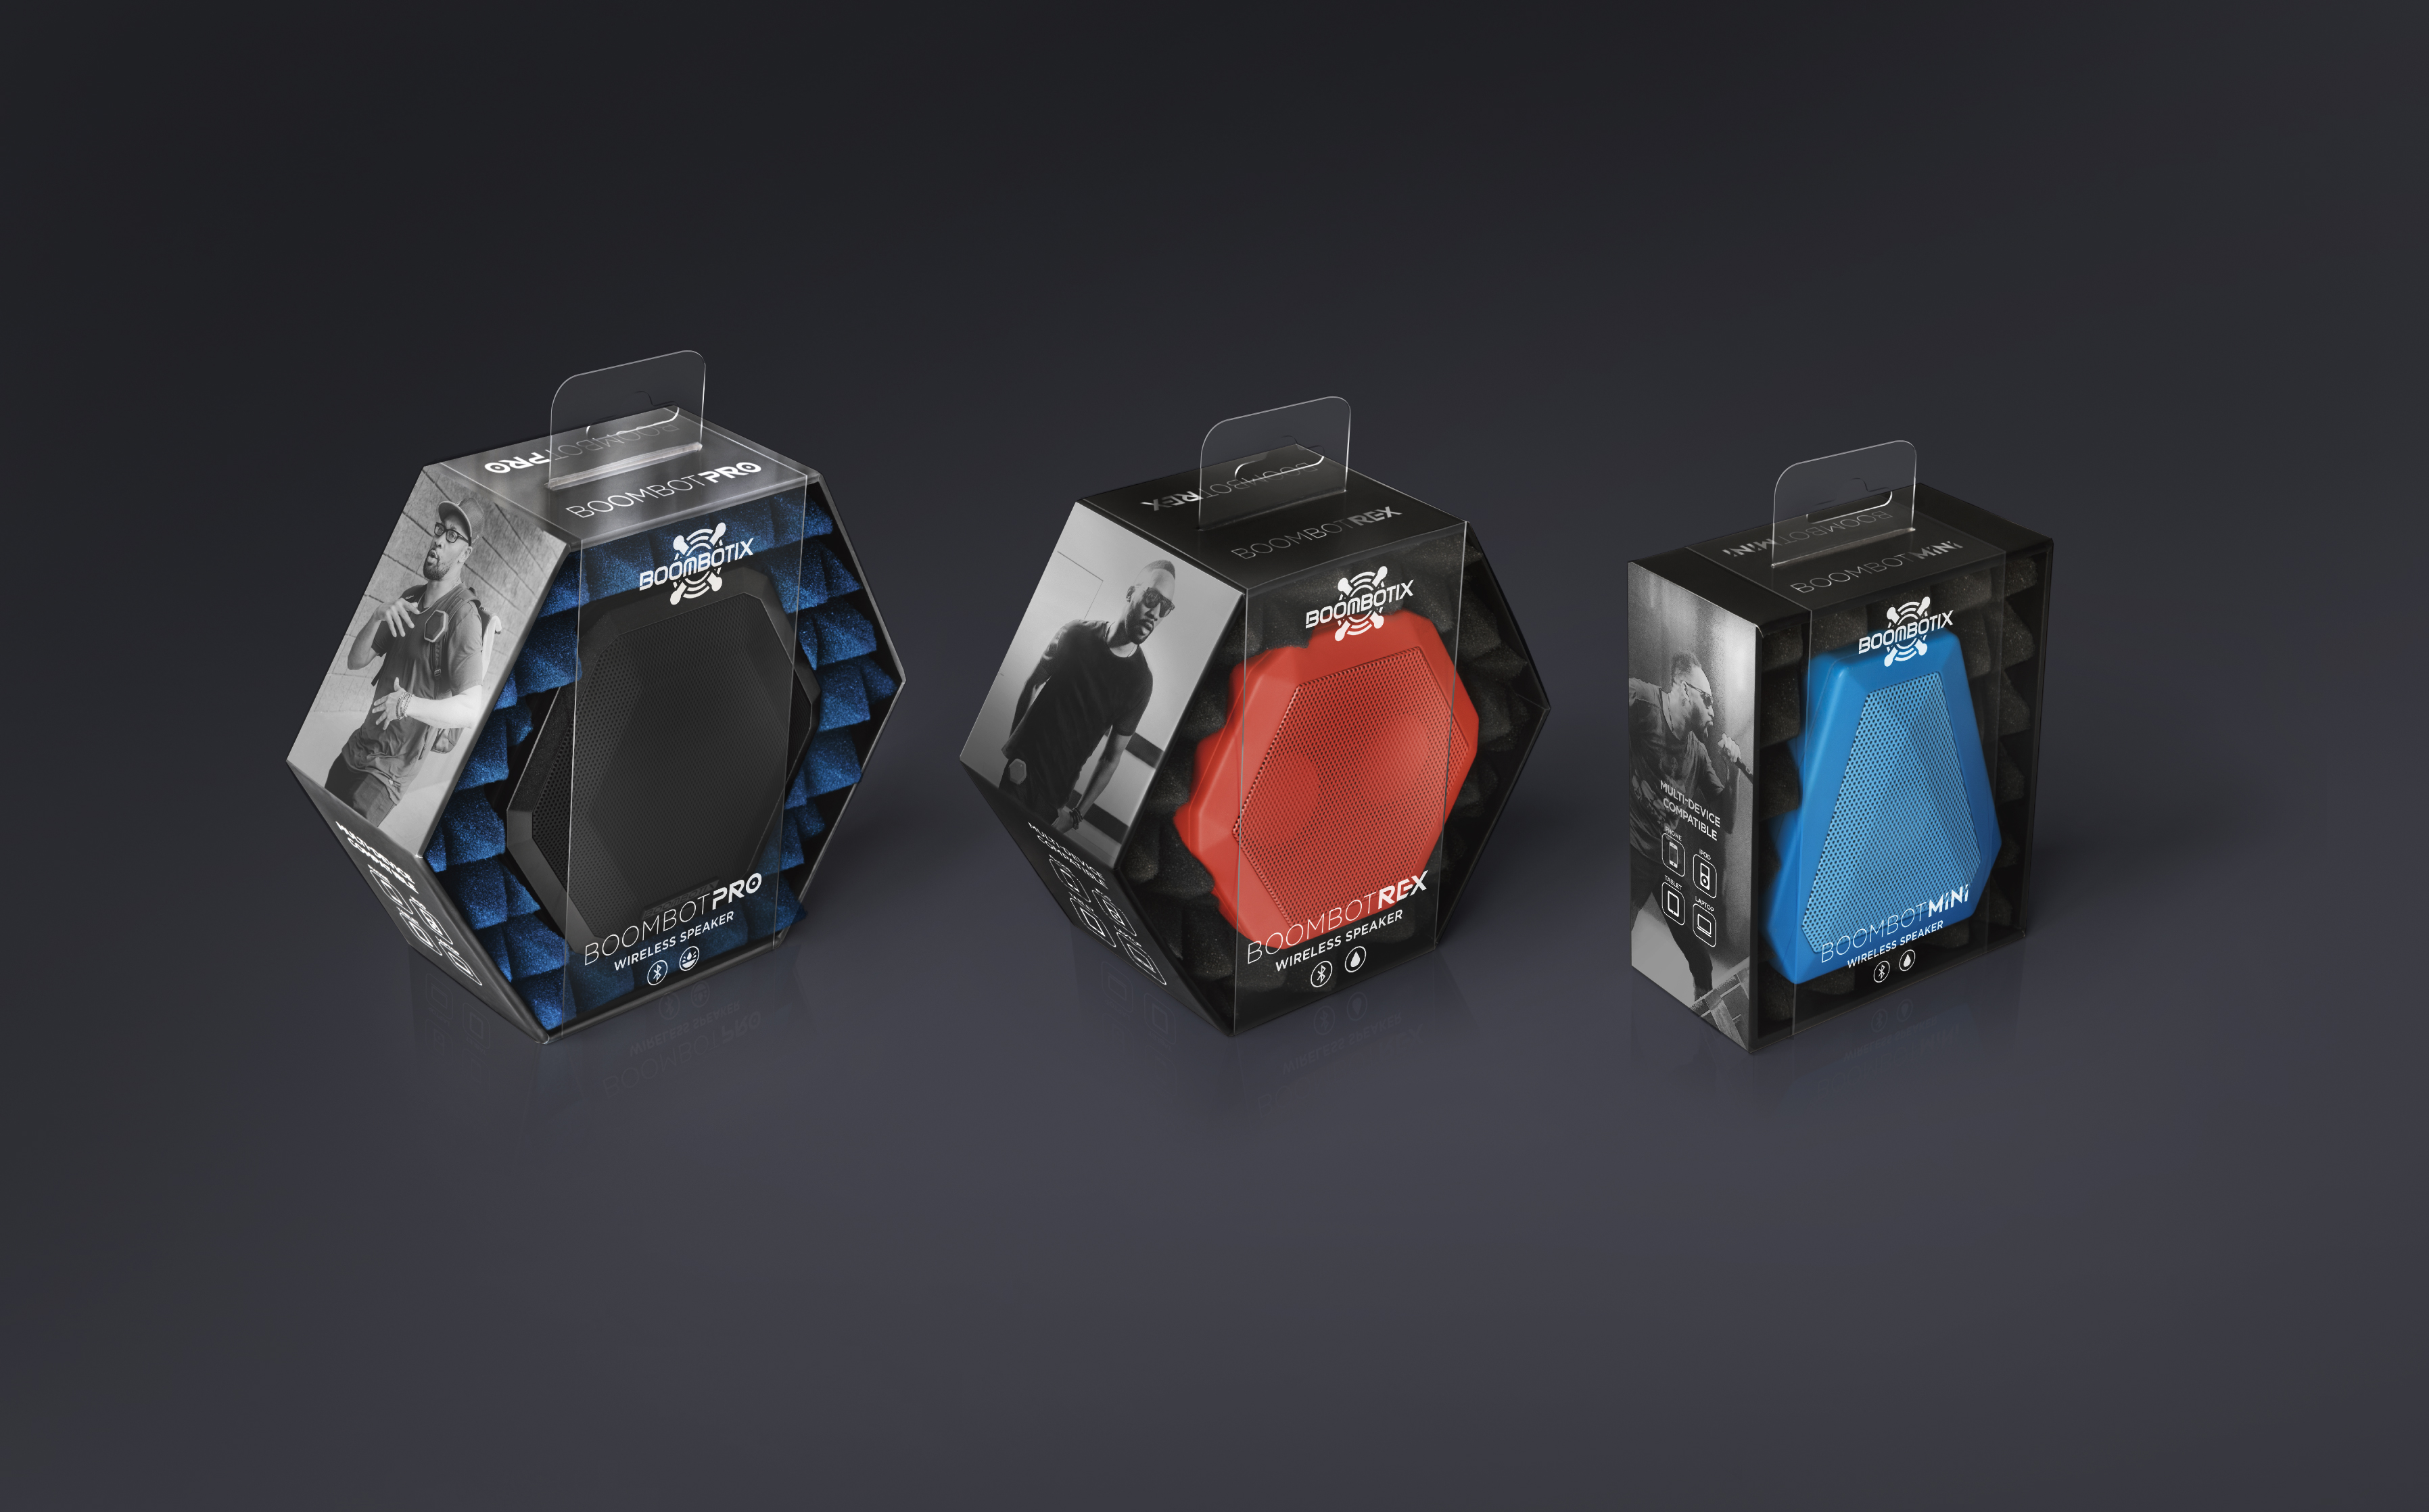 3 boombotix speaker products being displayed in various colors